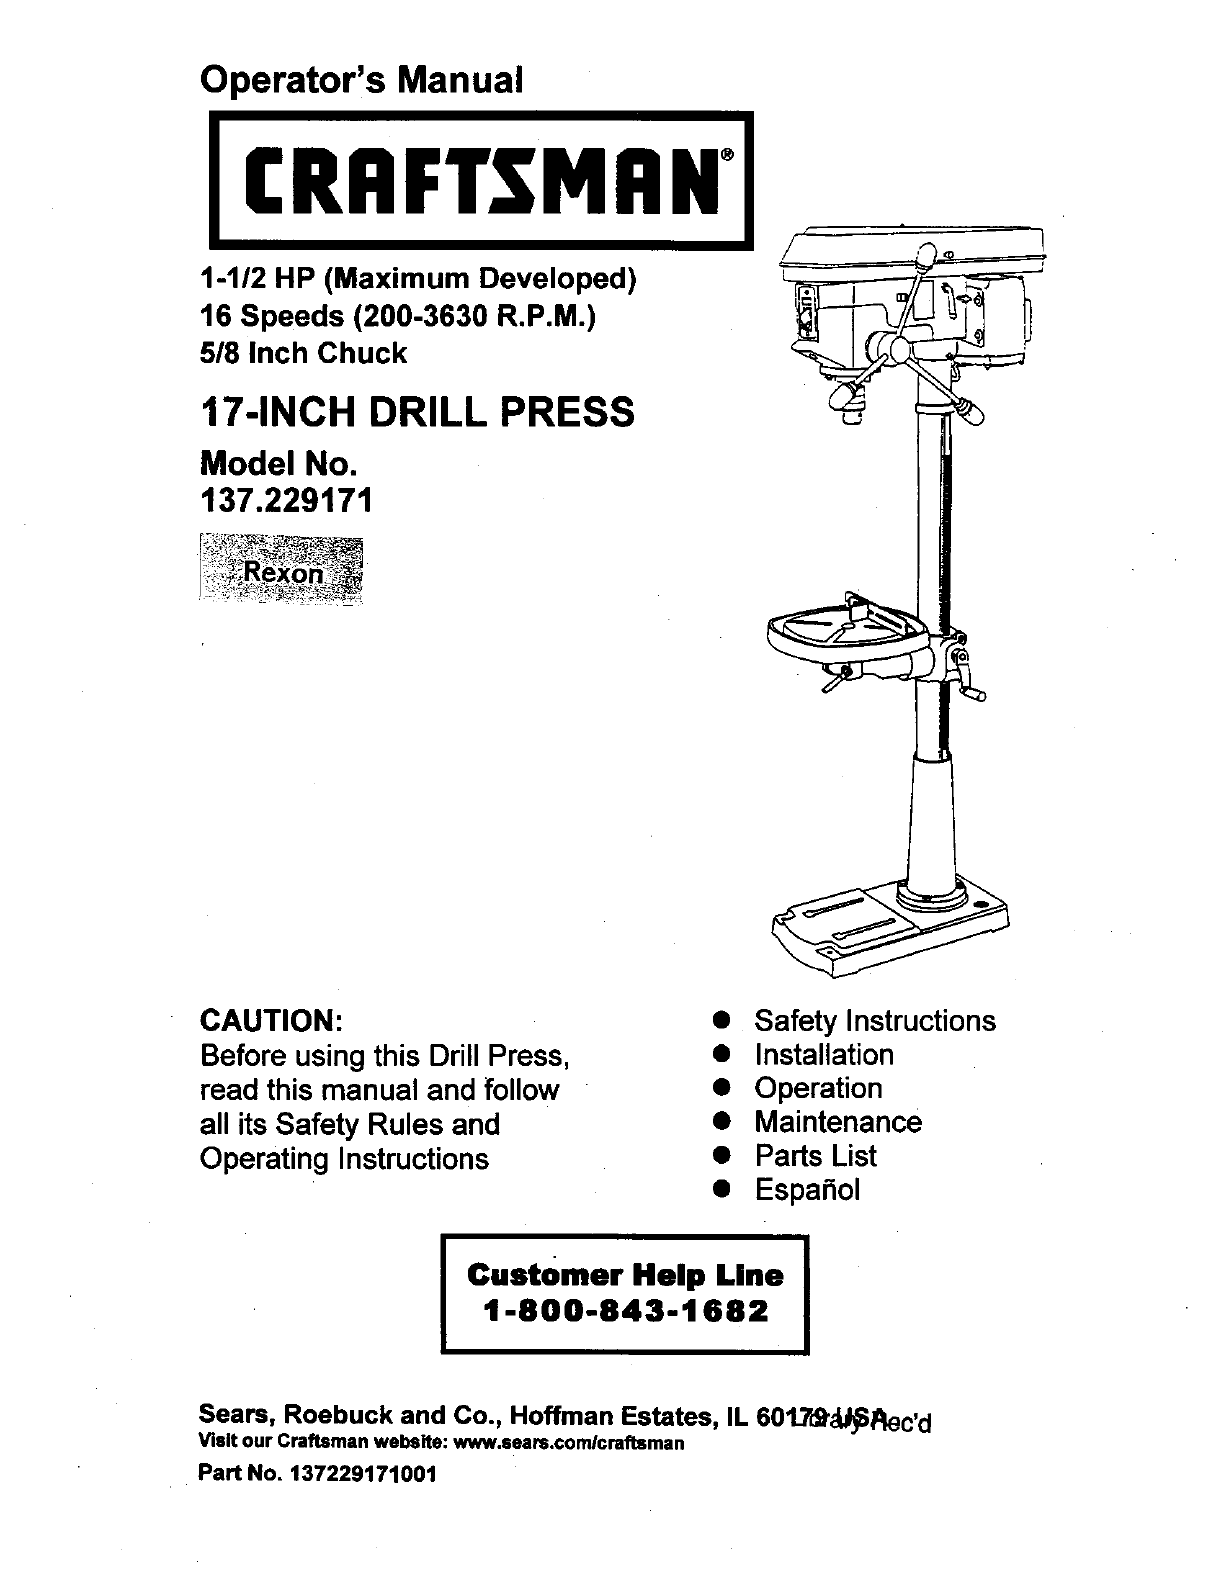 hight resolution of craftsman 137229170 user manual 17 drill press manuals and guides drill press switch wiring diagram craftsman